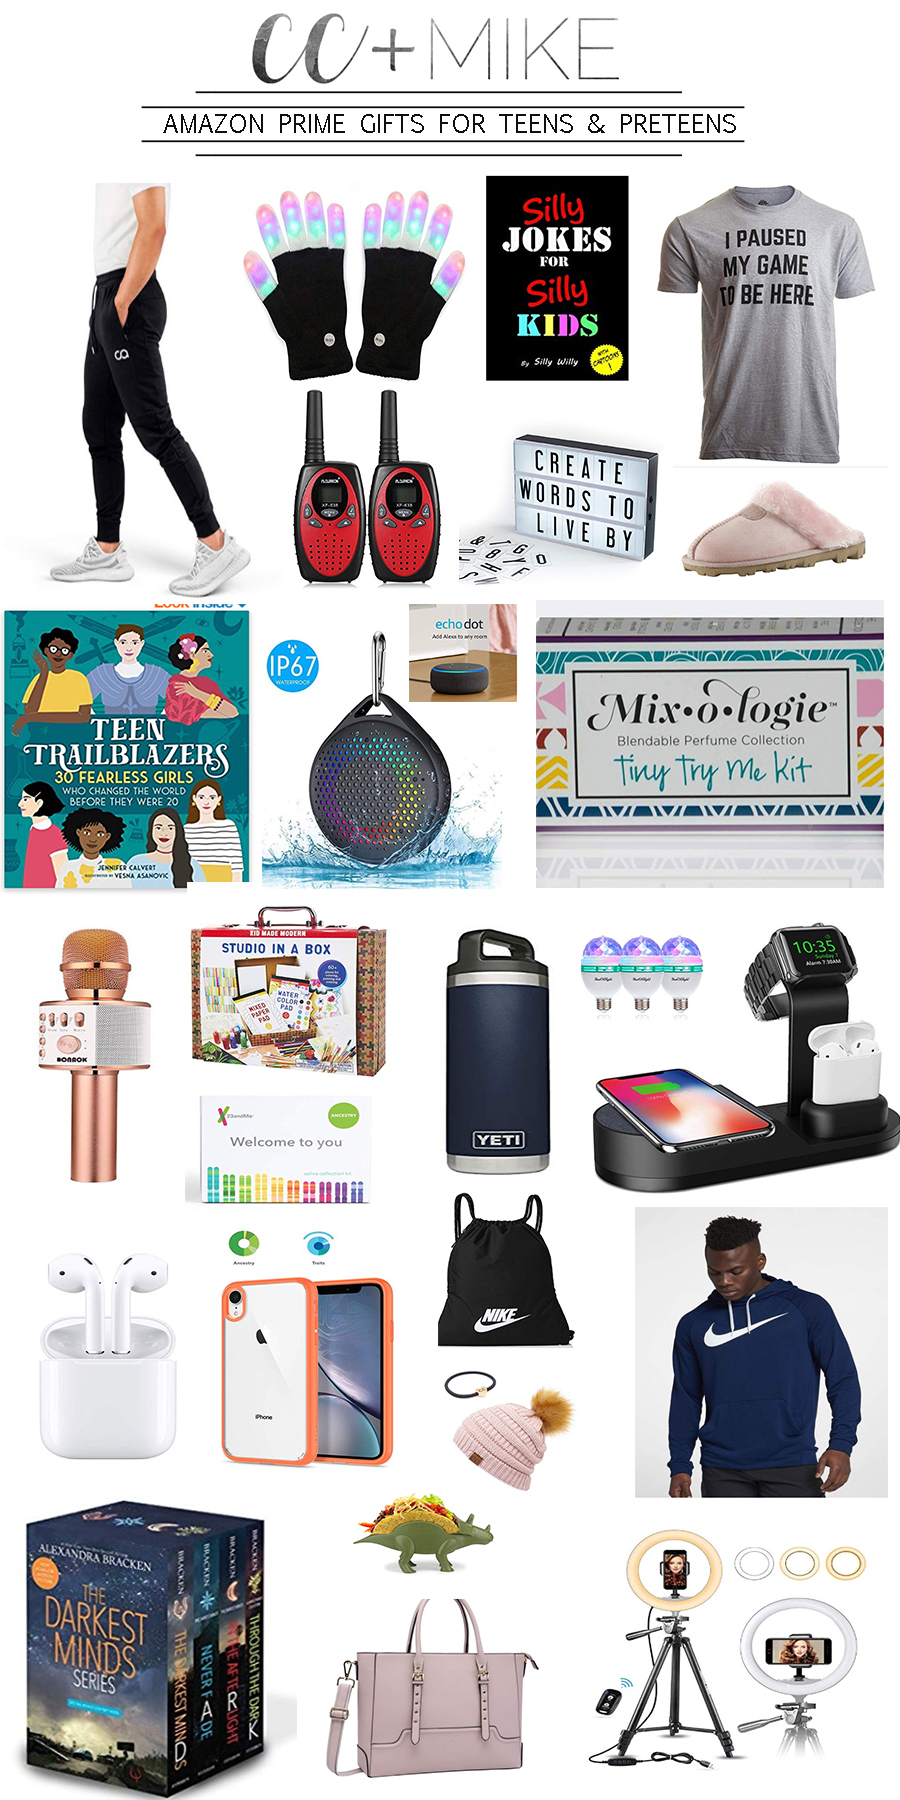 Last Minute Amazon Prime Christmas Gift Ideas For Preteens And Teens Cc Mike